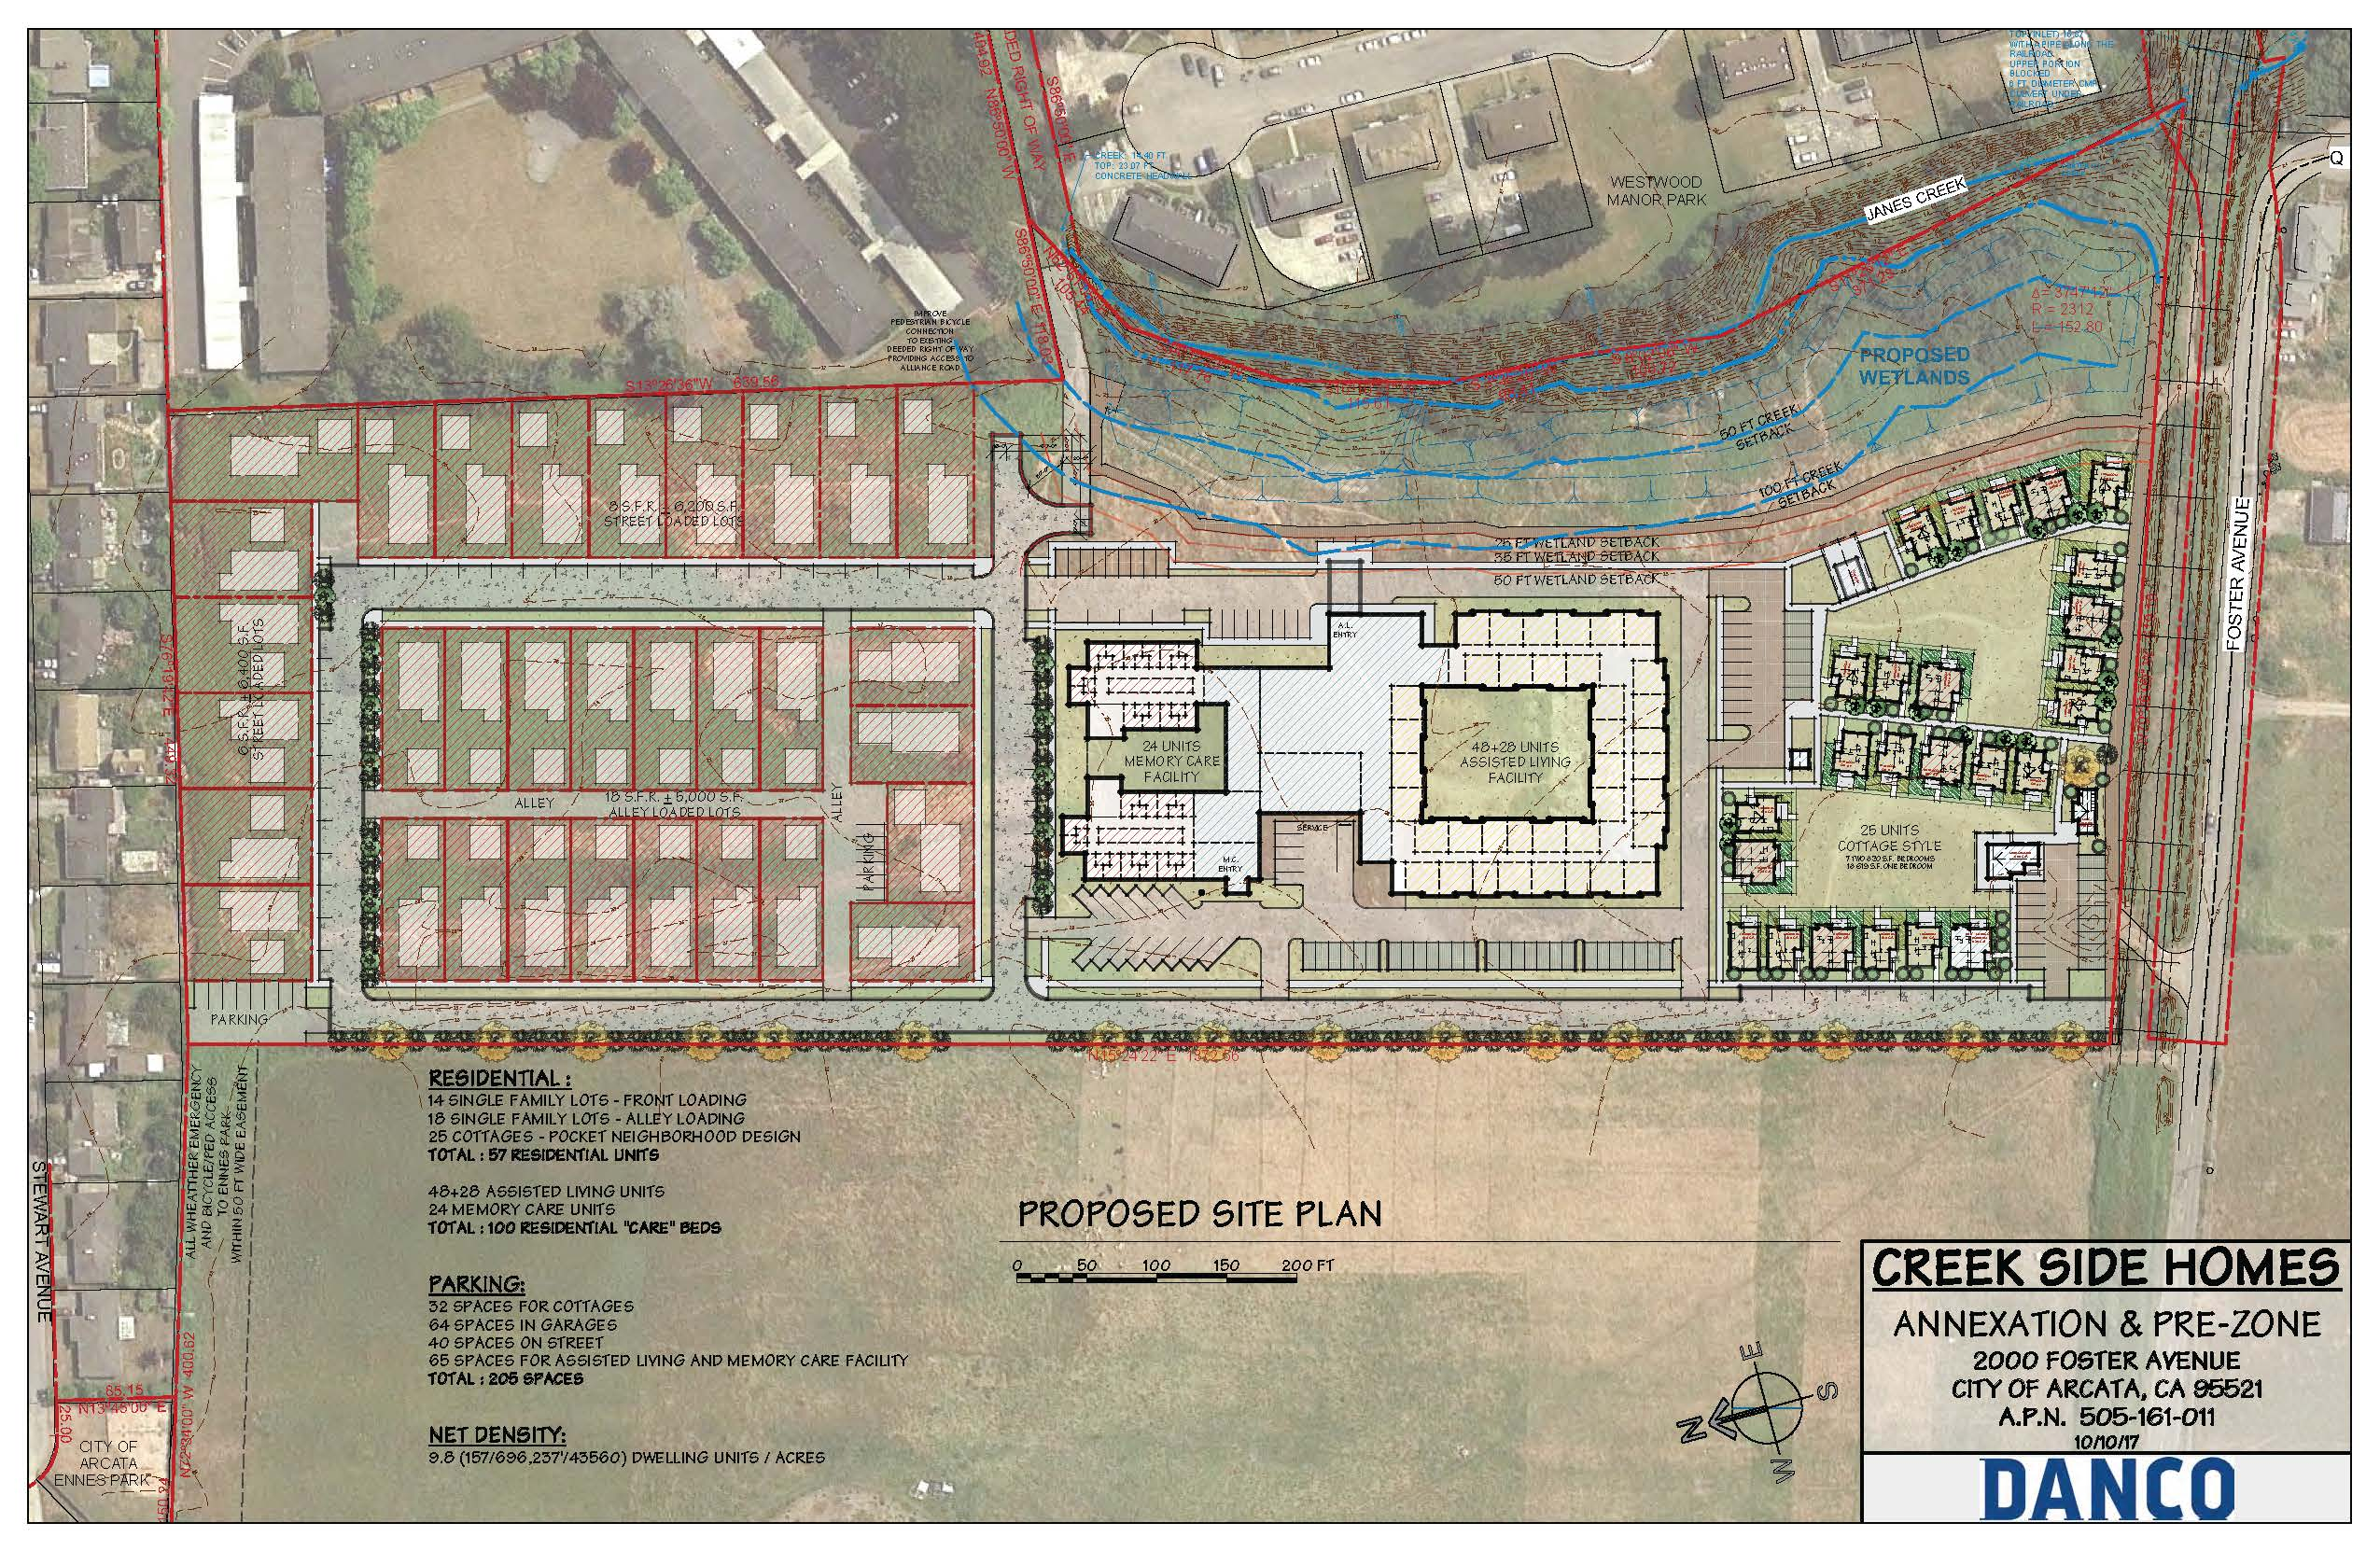 Creek Side Revised Site Plan 10.10.17 Opens in new window